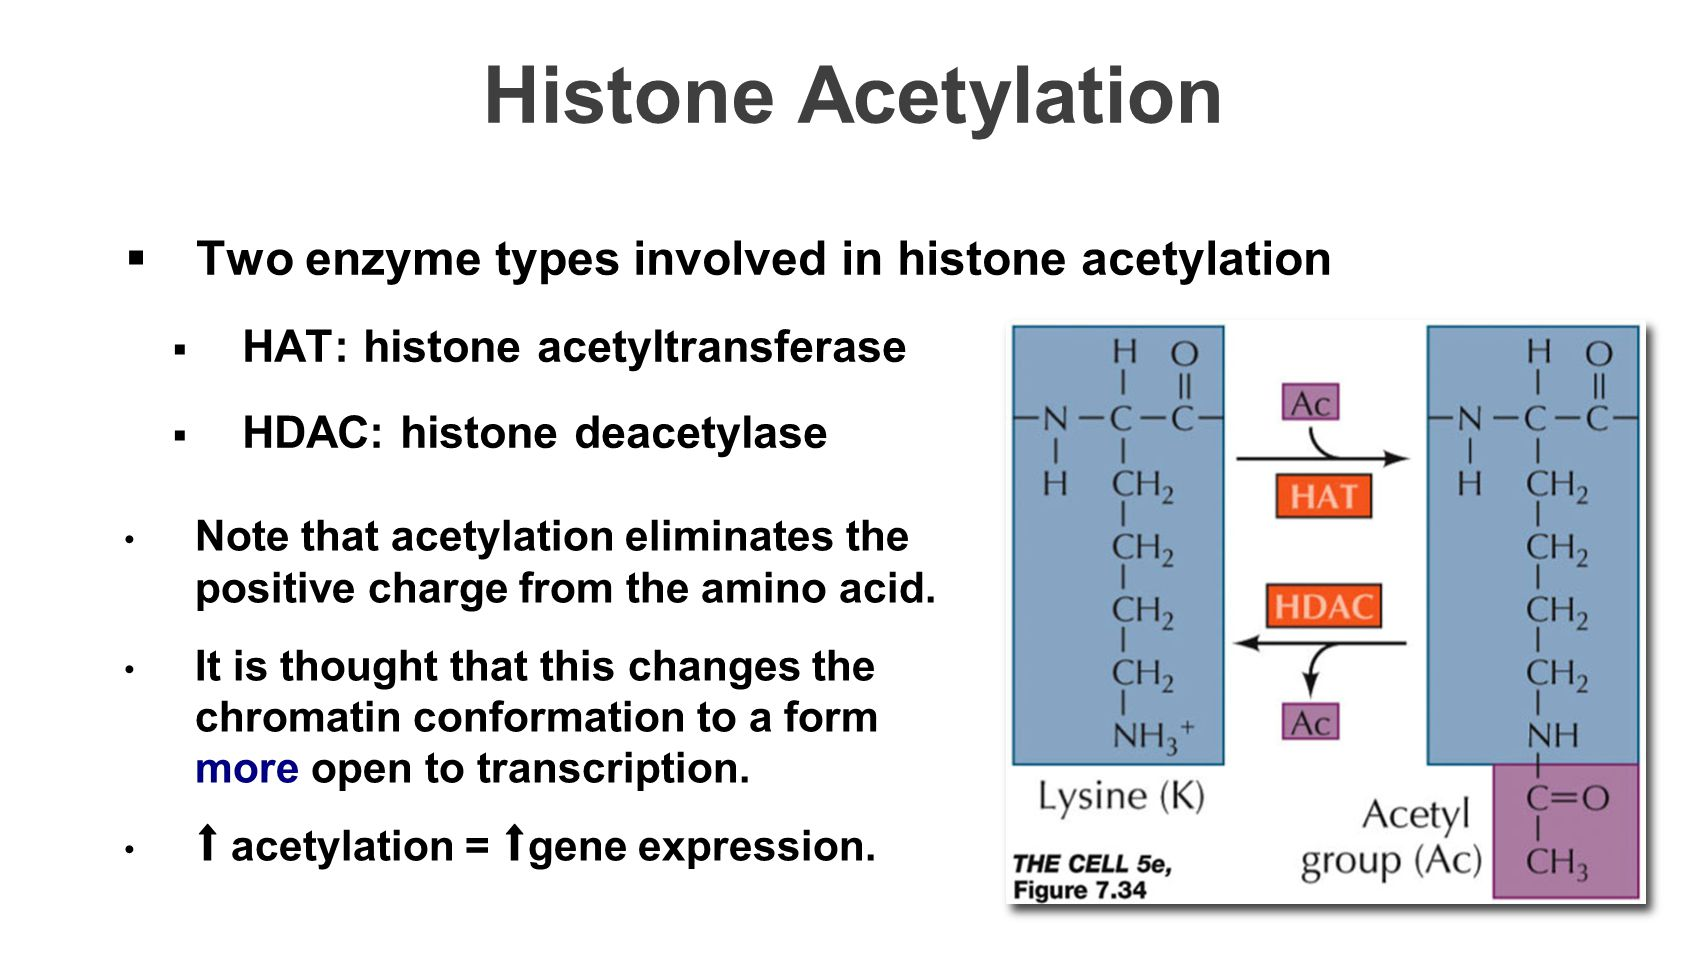 Histone Acetylation  Two enzyme types involved in histone acetylation  HAT: histone acetyltransferase  HDAC: histone deacetylase Note that acetylation eliminates the positive charge from the amino acid.